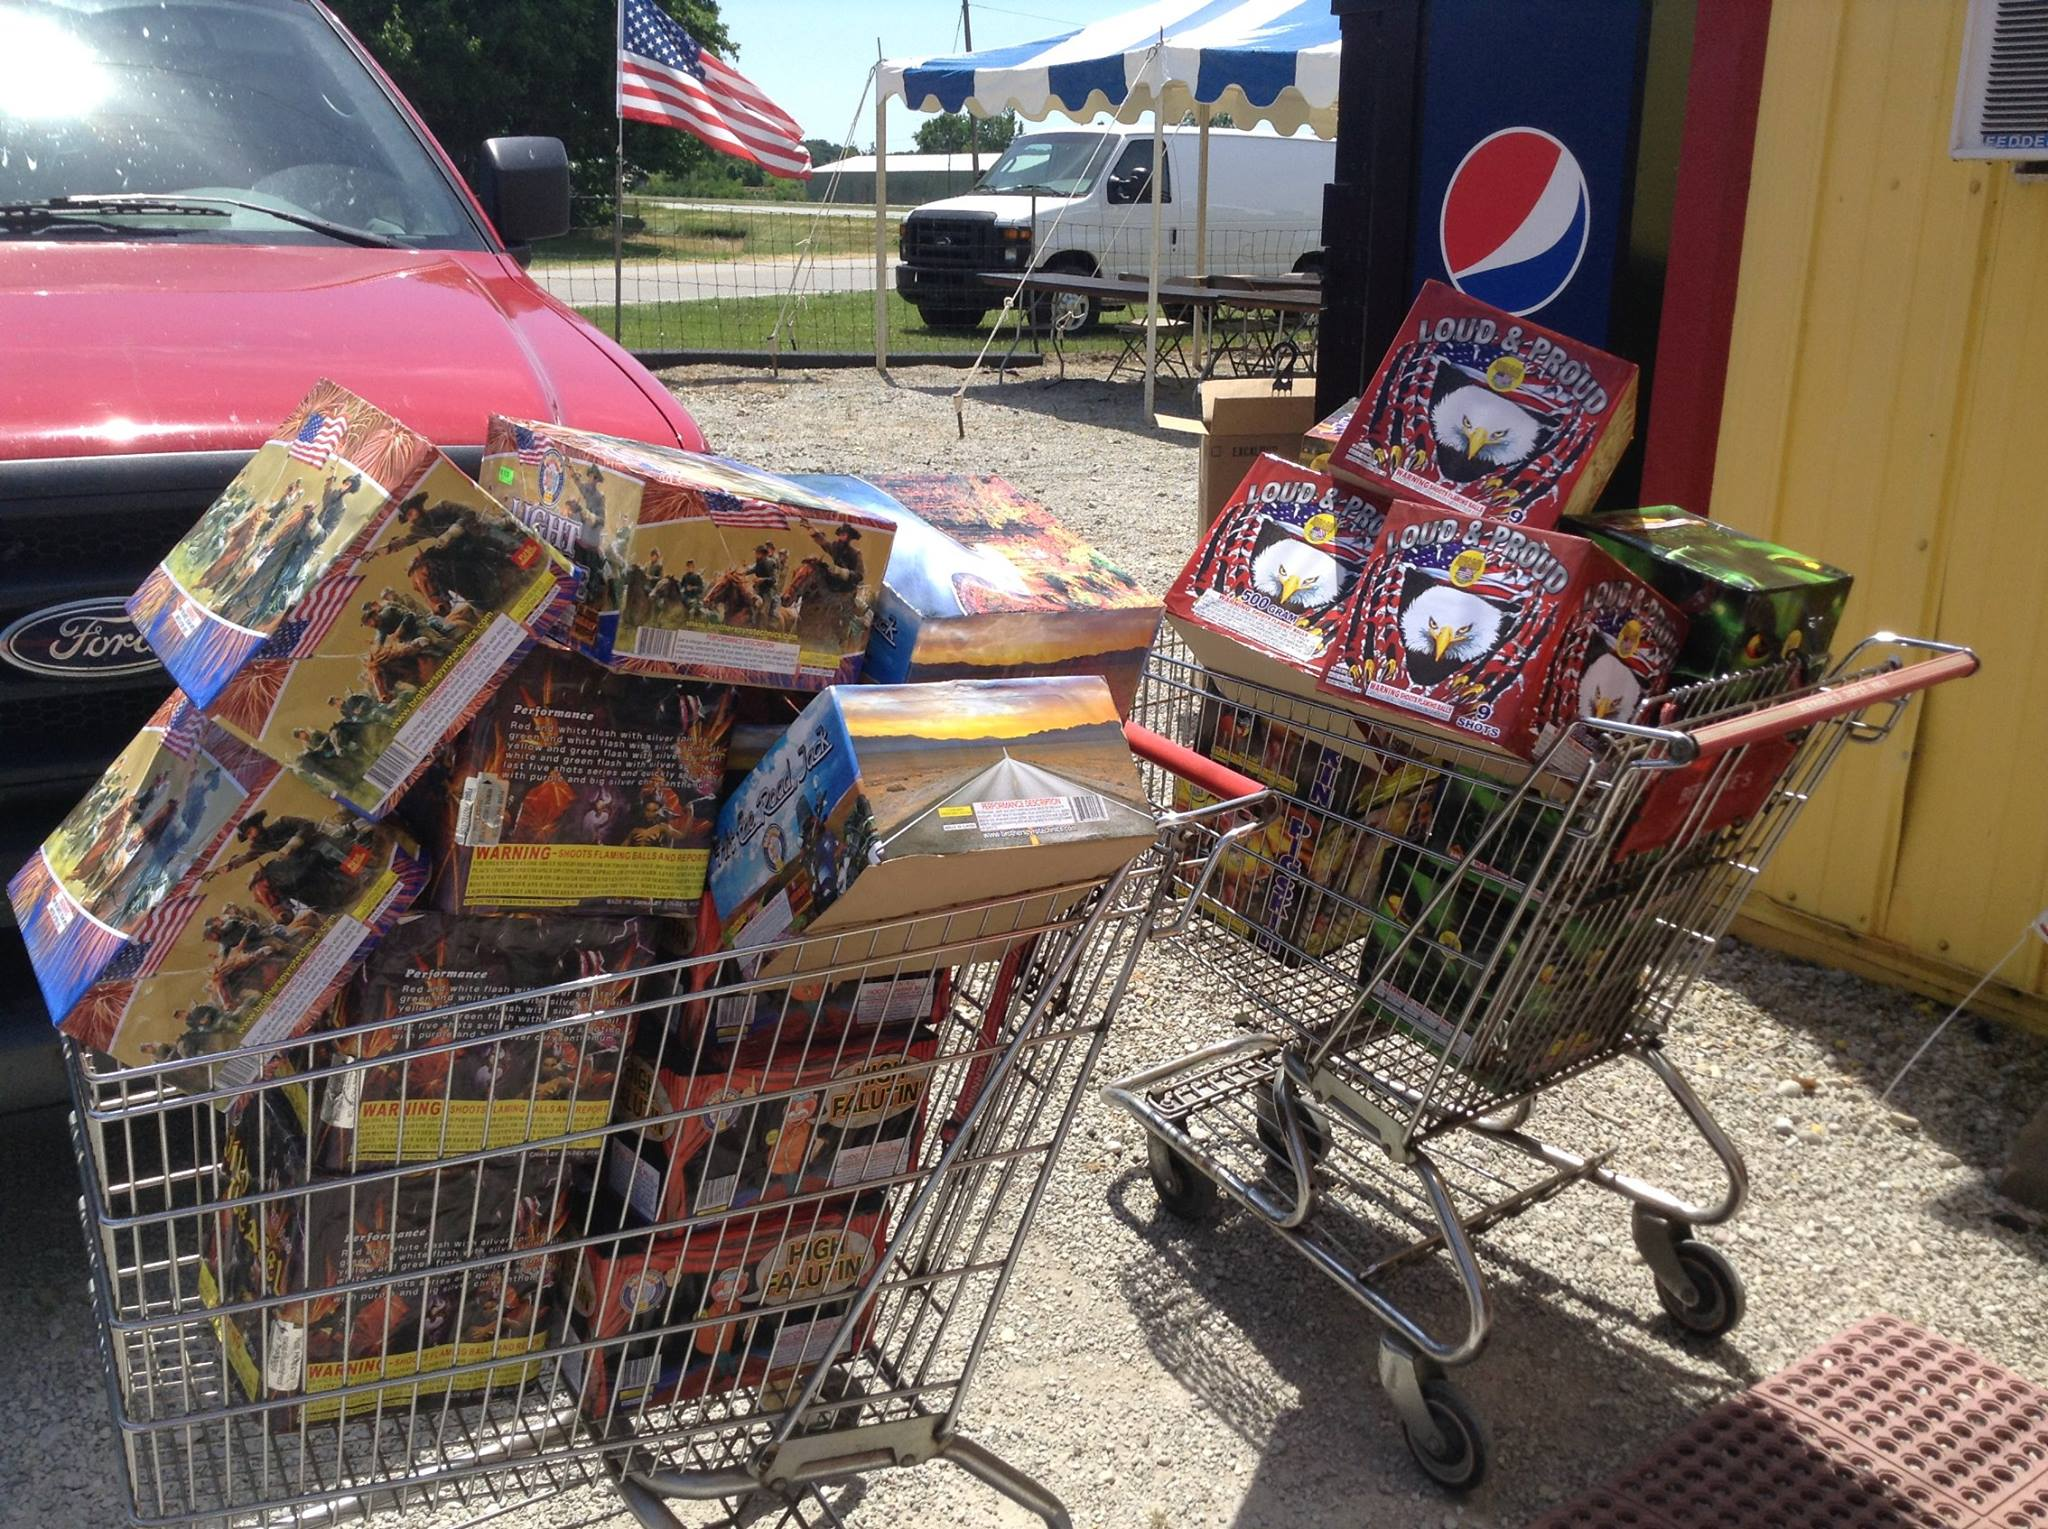 cart of fireworks